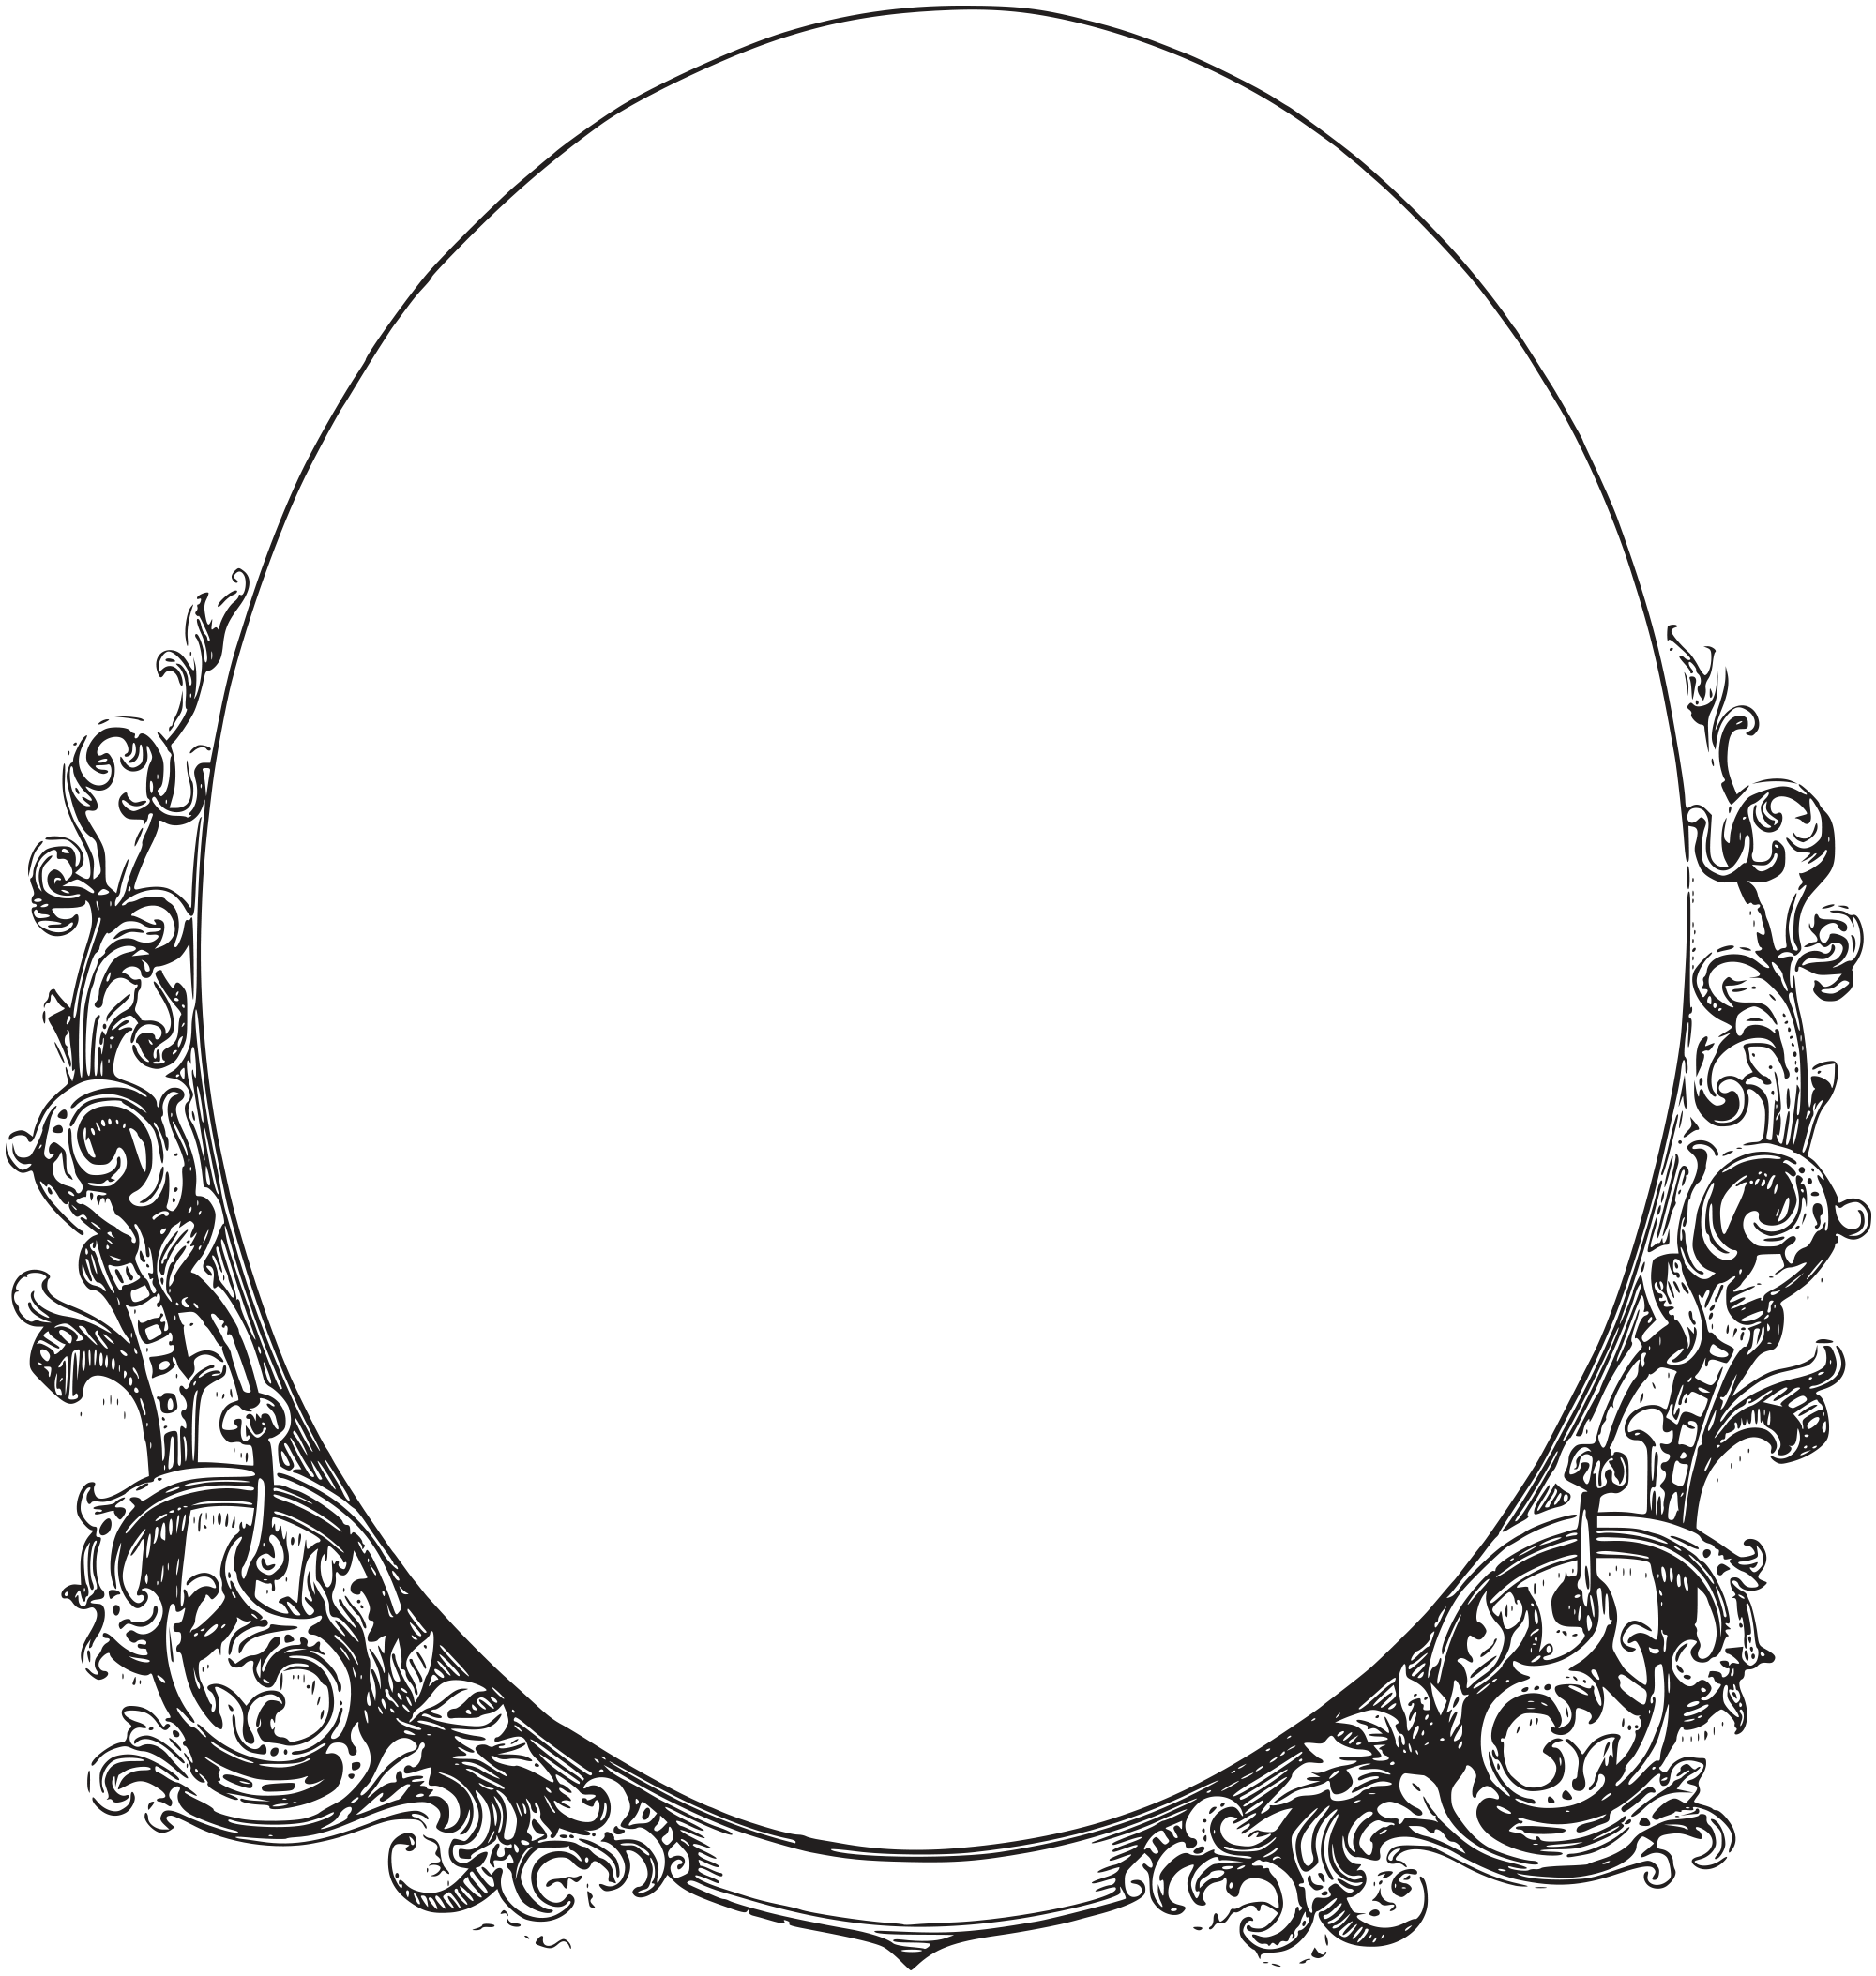 download royalty free images ornate oval frame border